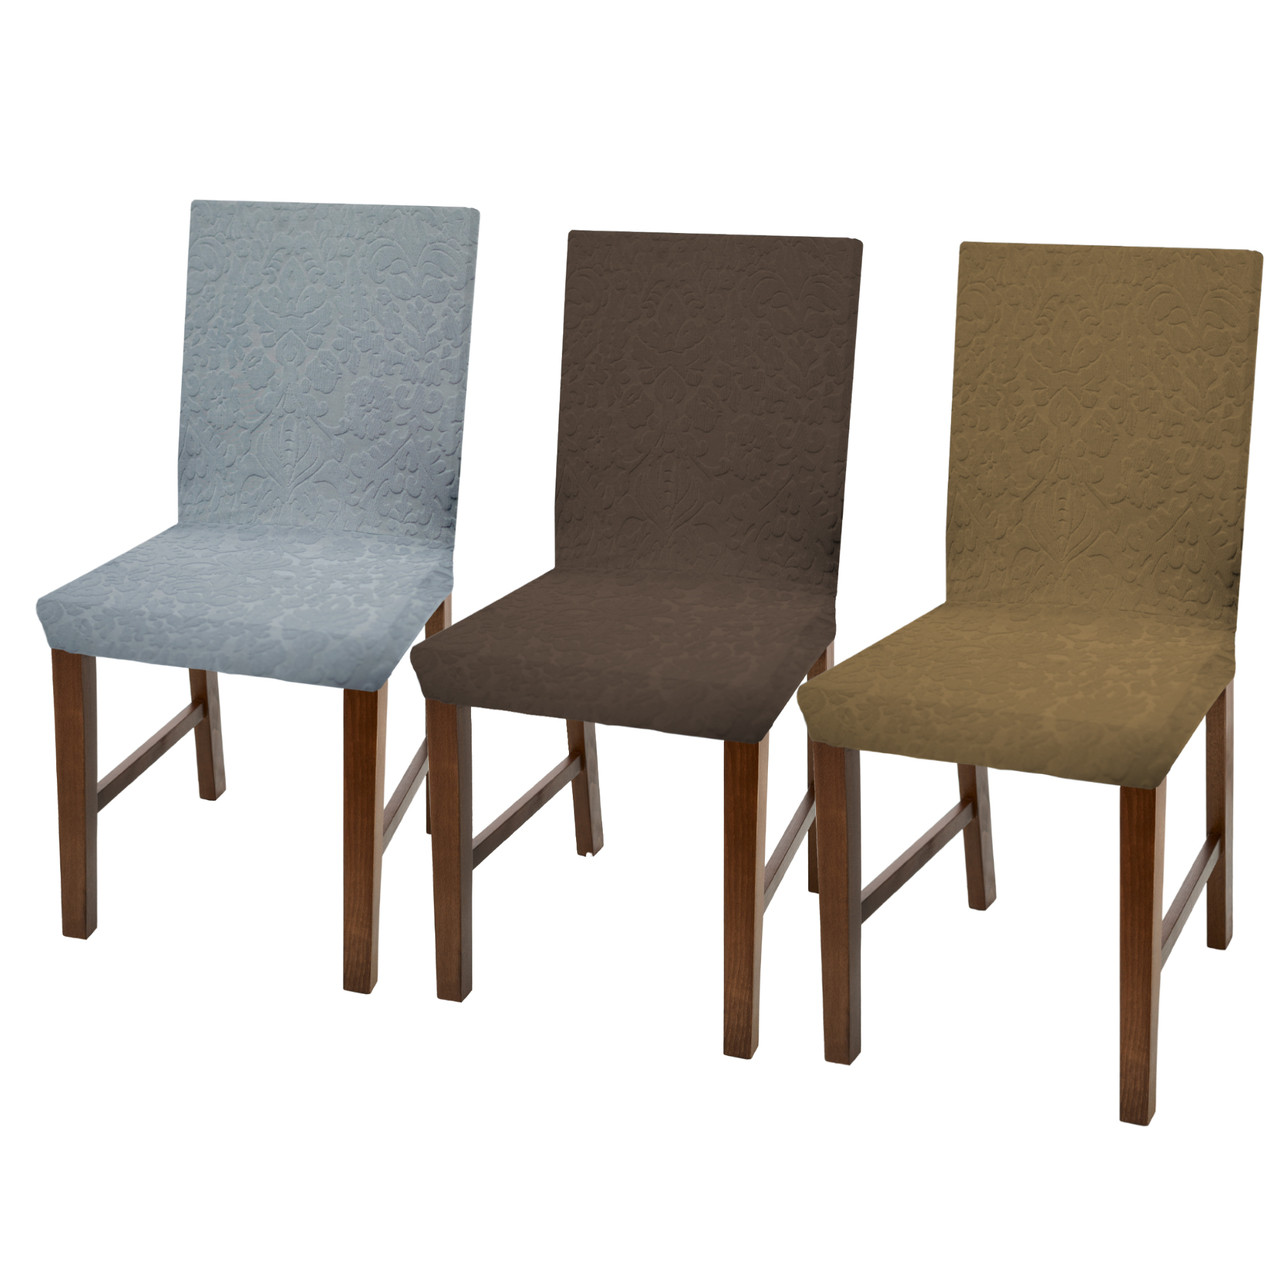 Incredible Linen Store Luxurious Damask Dining Chair Cover Form Fitting Soft Parson Chair Slipcover Set Of 2 4 6 Ncnpc Chair Design For Home Ncnpcorg